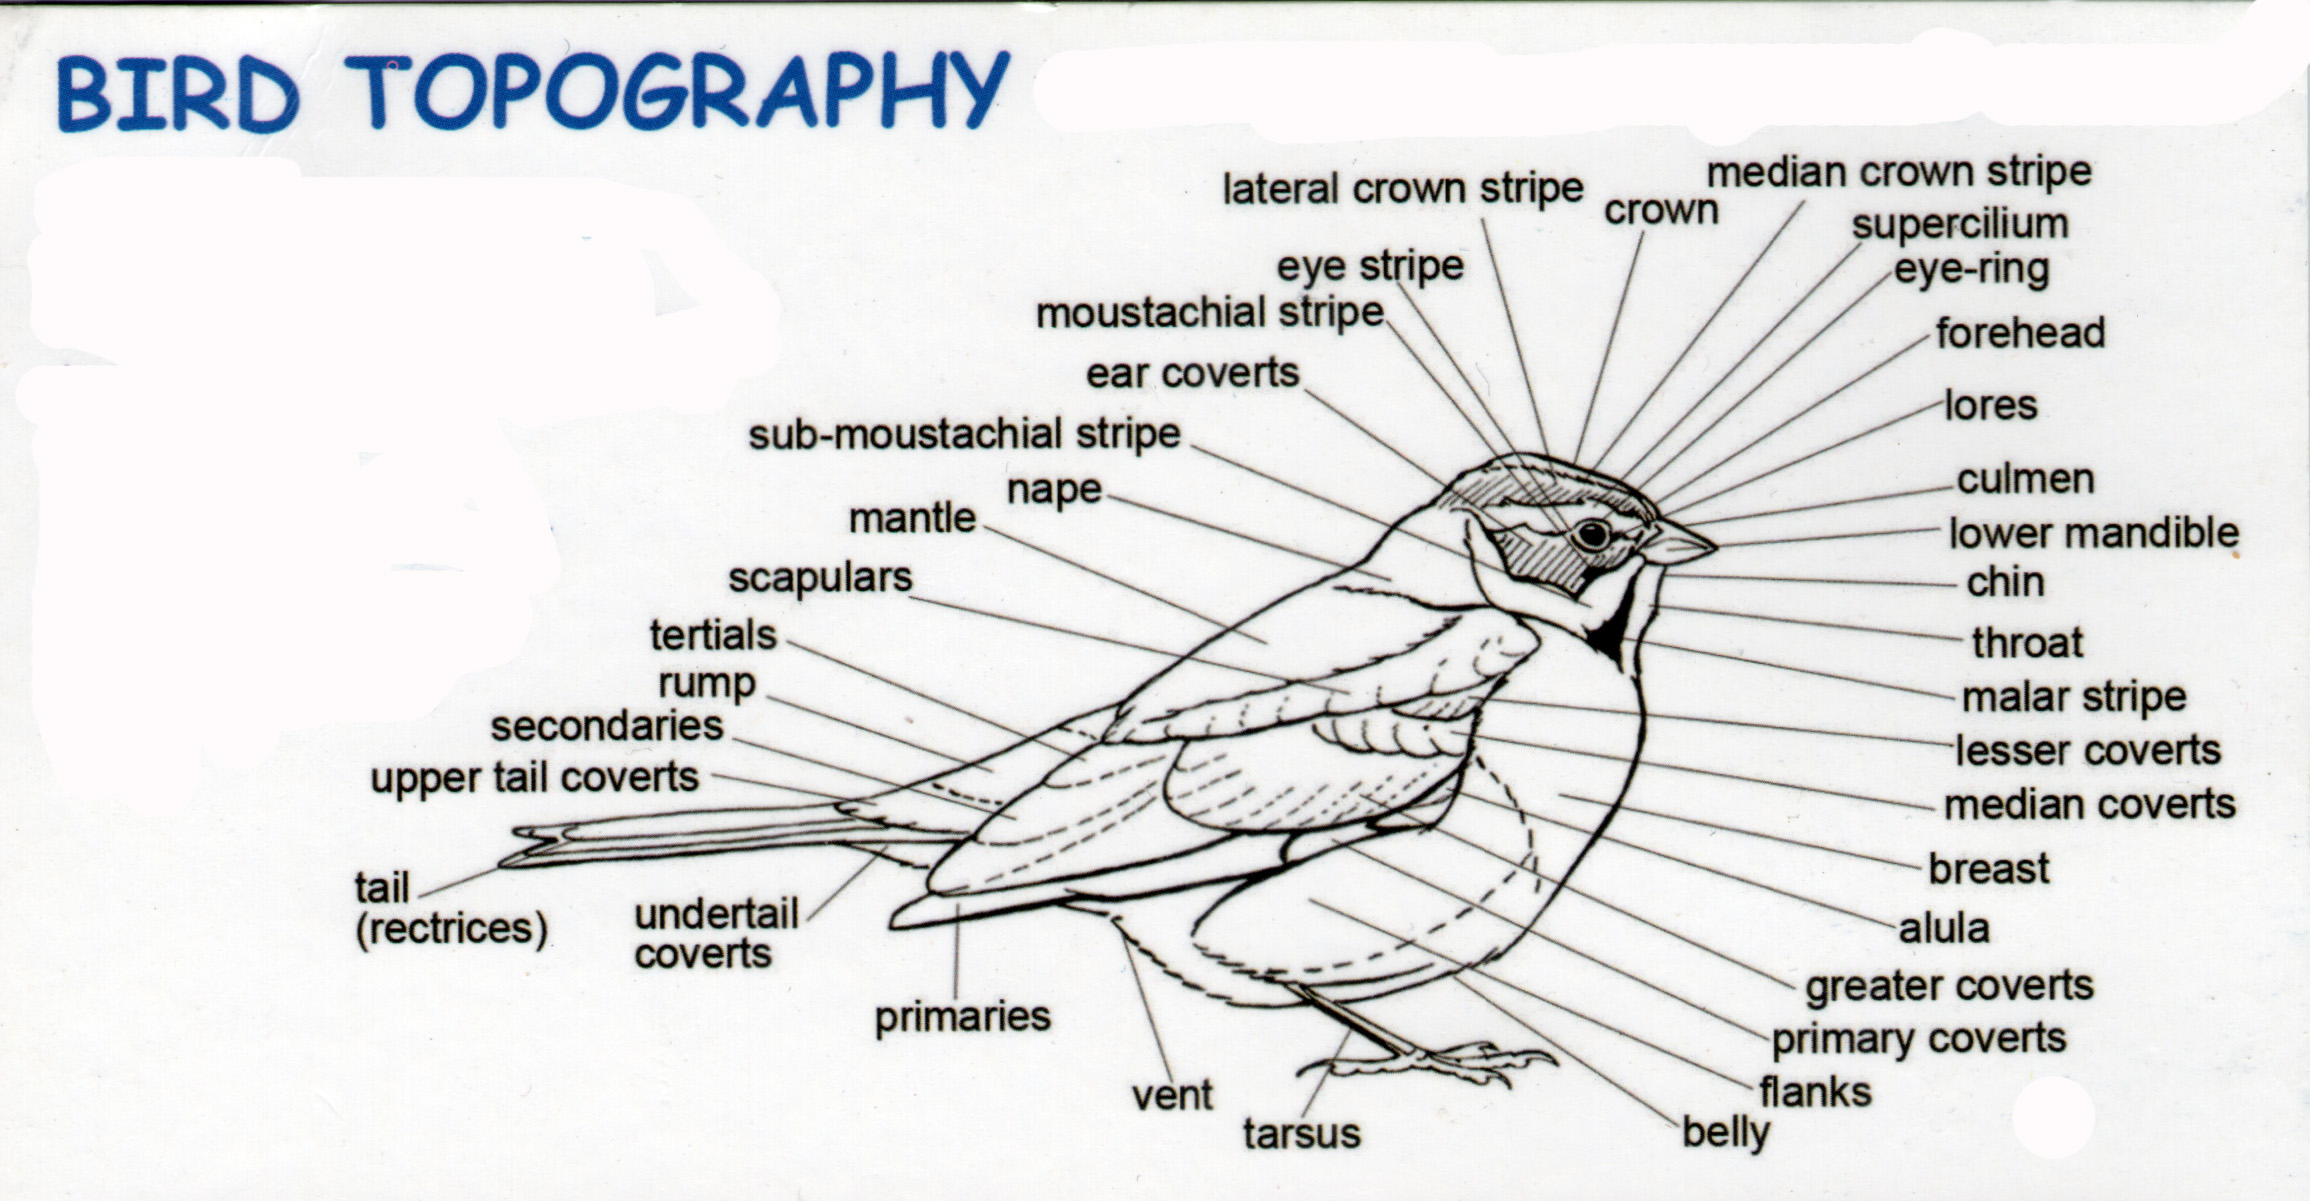 BIRD TOPOGRAPHY - Gear Guide - Chat - The RSPB Community